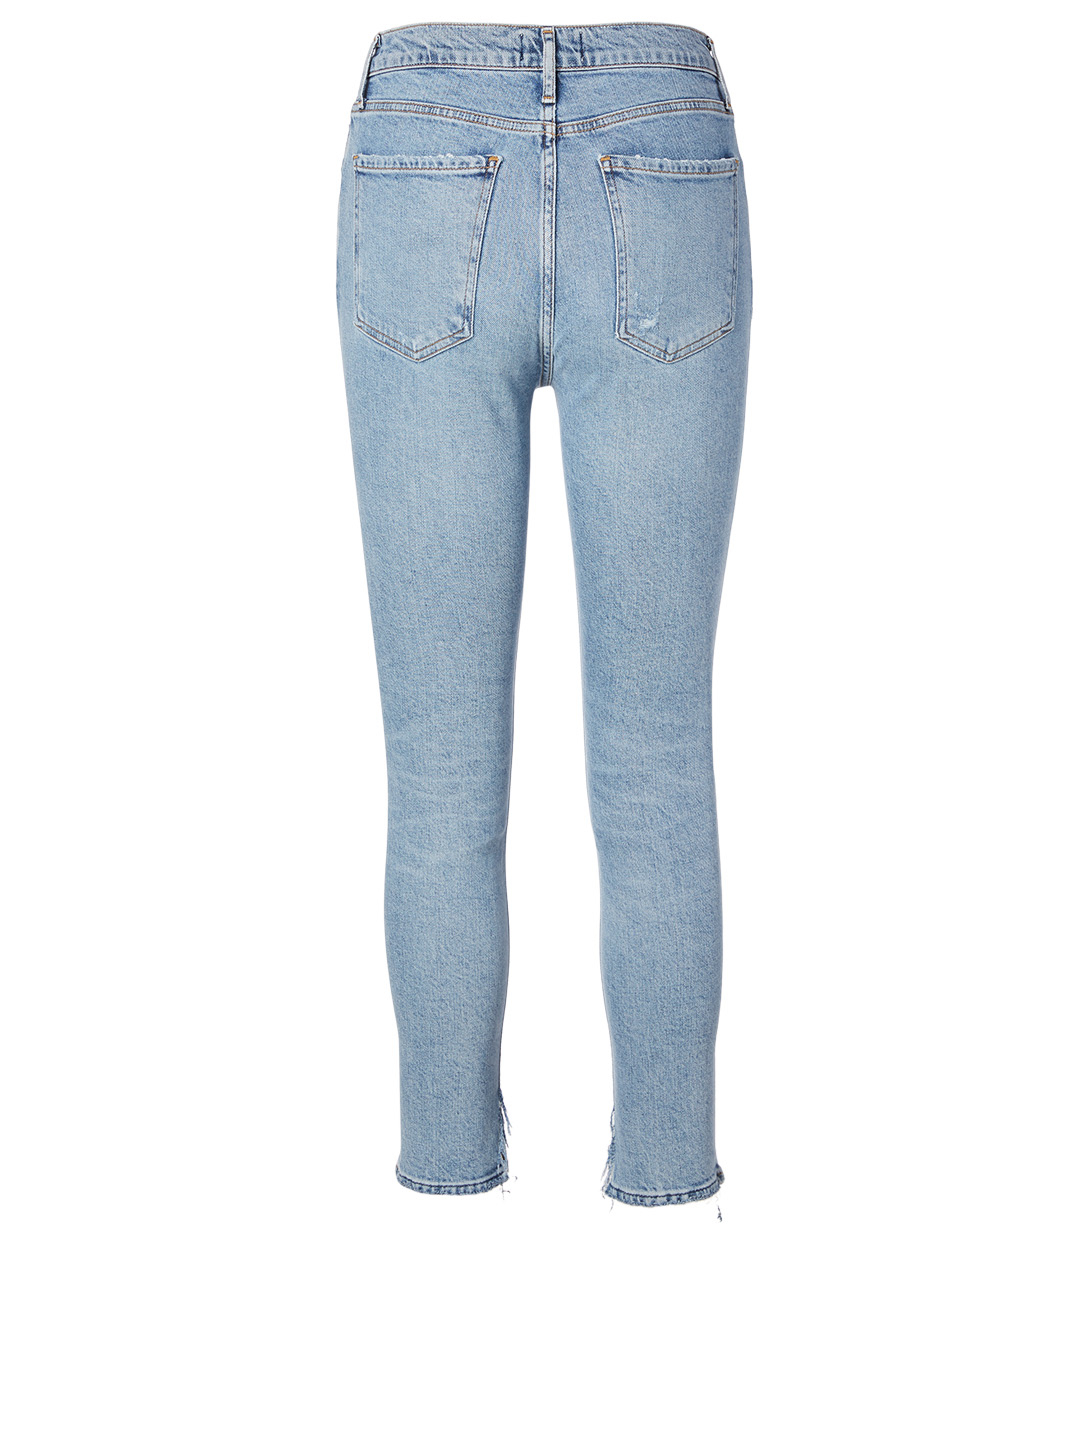 AGOLDE Nico High-Waisted Jeans Women's Blue